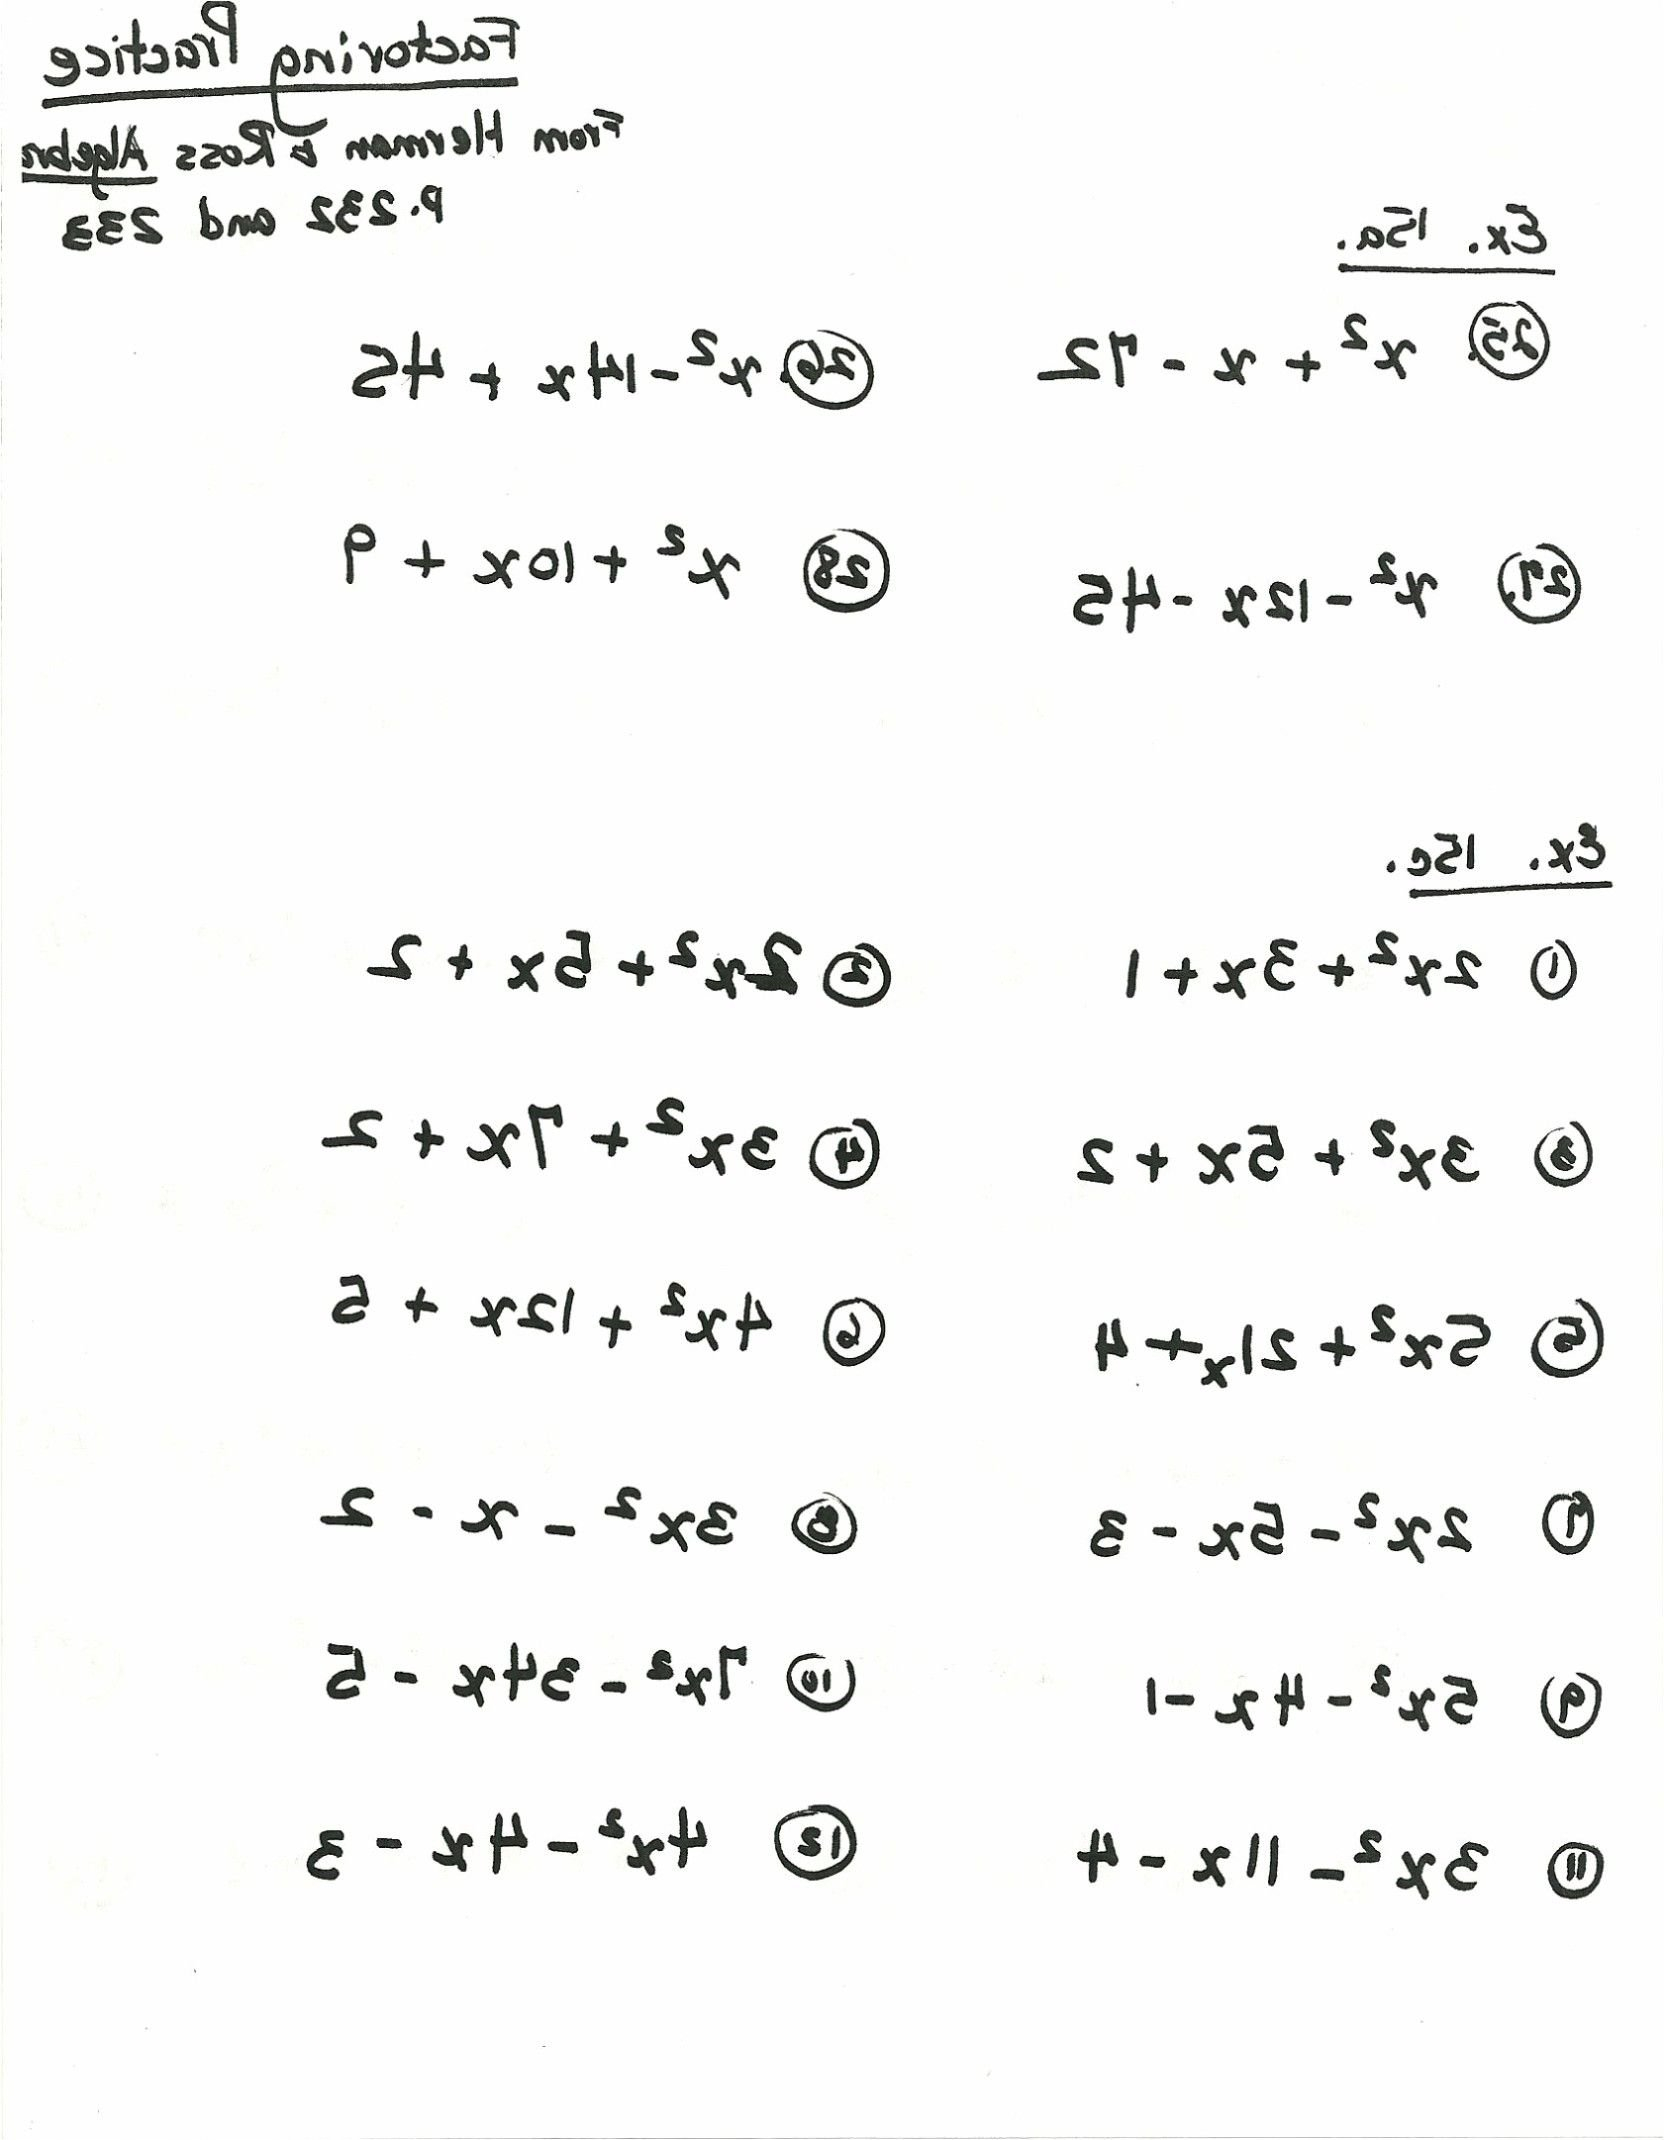 Factoring Practice Worksheet Answers  Briefencounters Within Factoring Practice Worksheet Answers